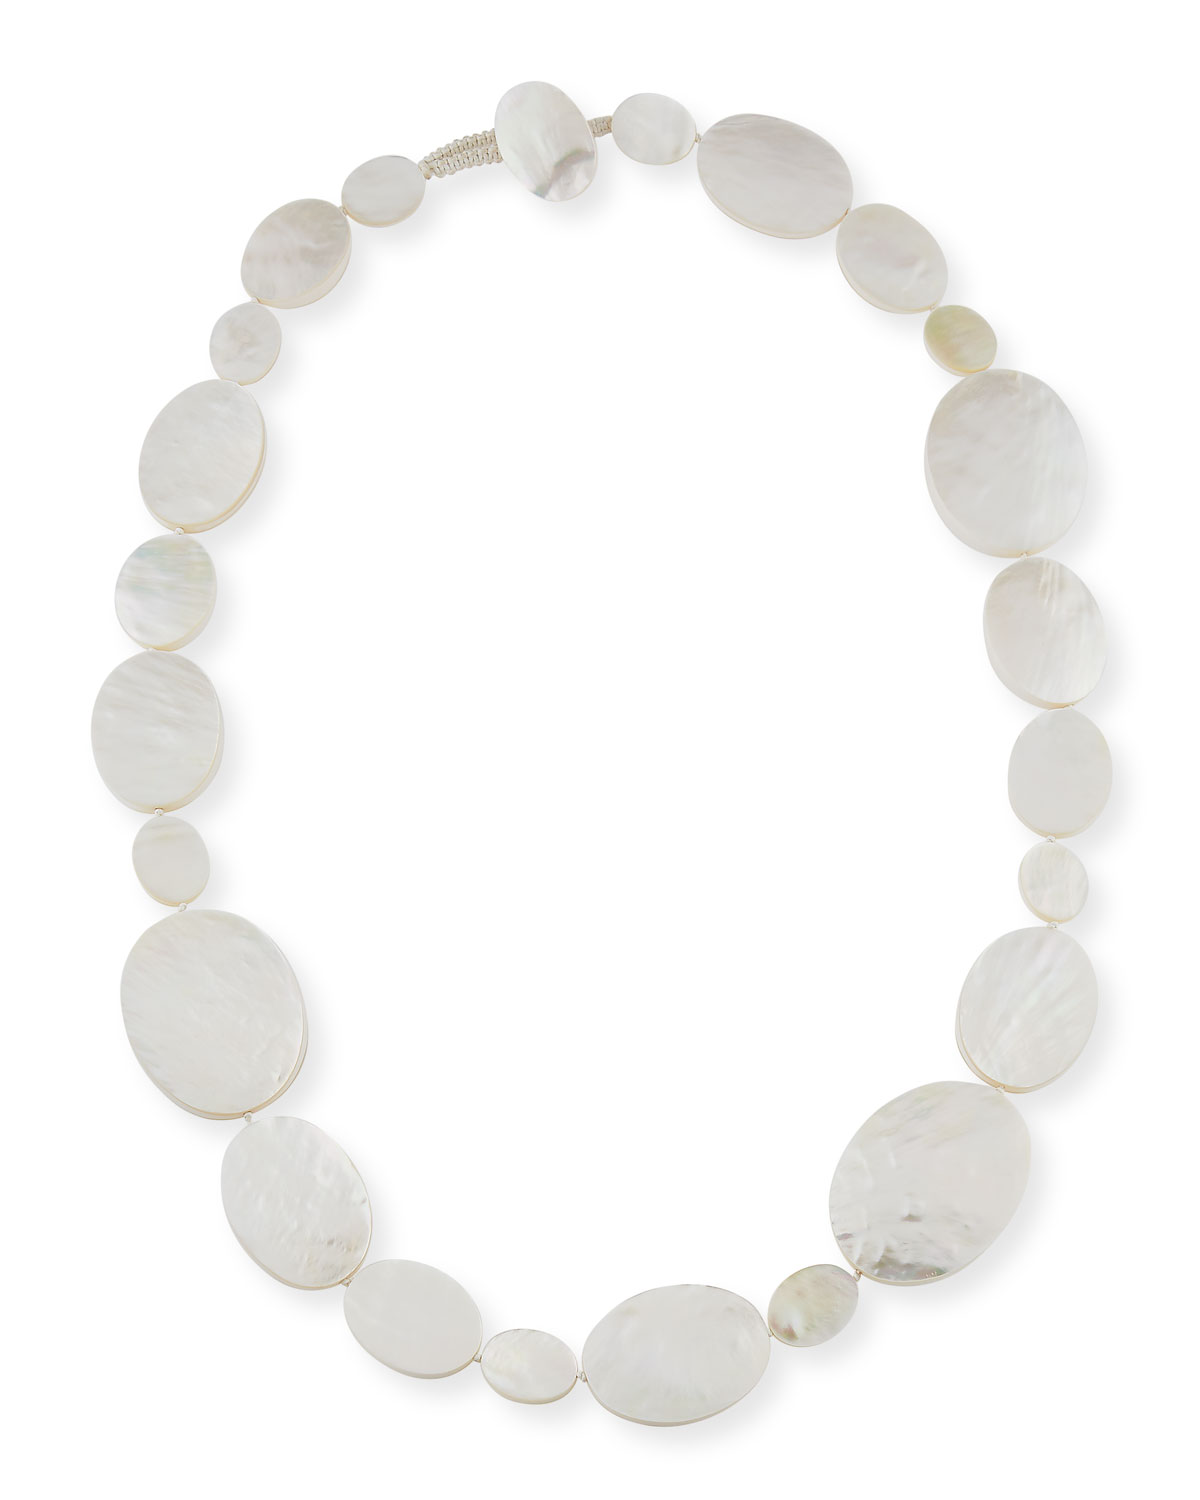 Single-Strand Oval Mother-of-Pearl Necklace